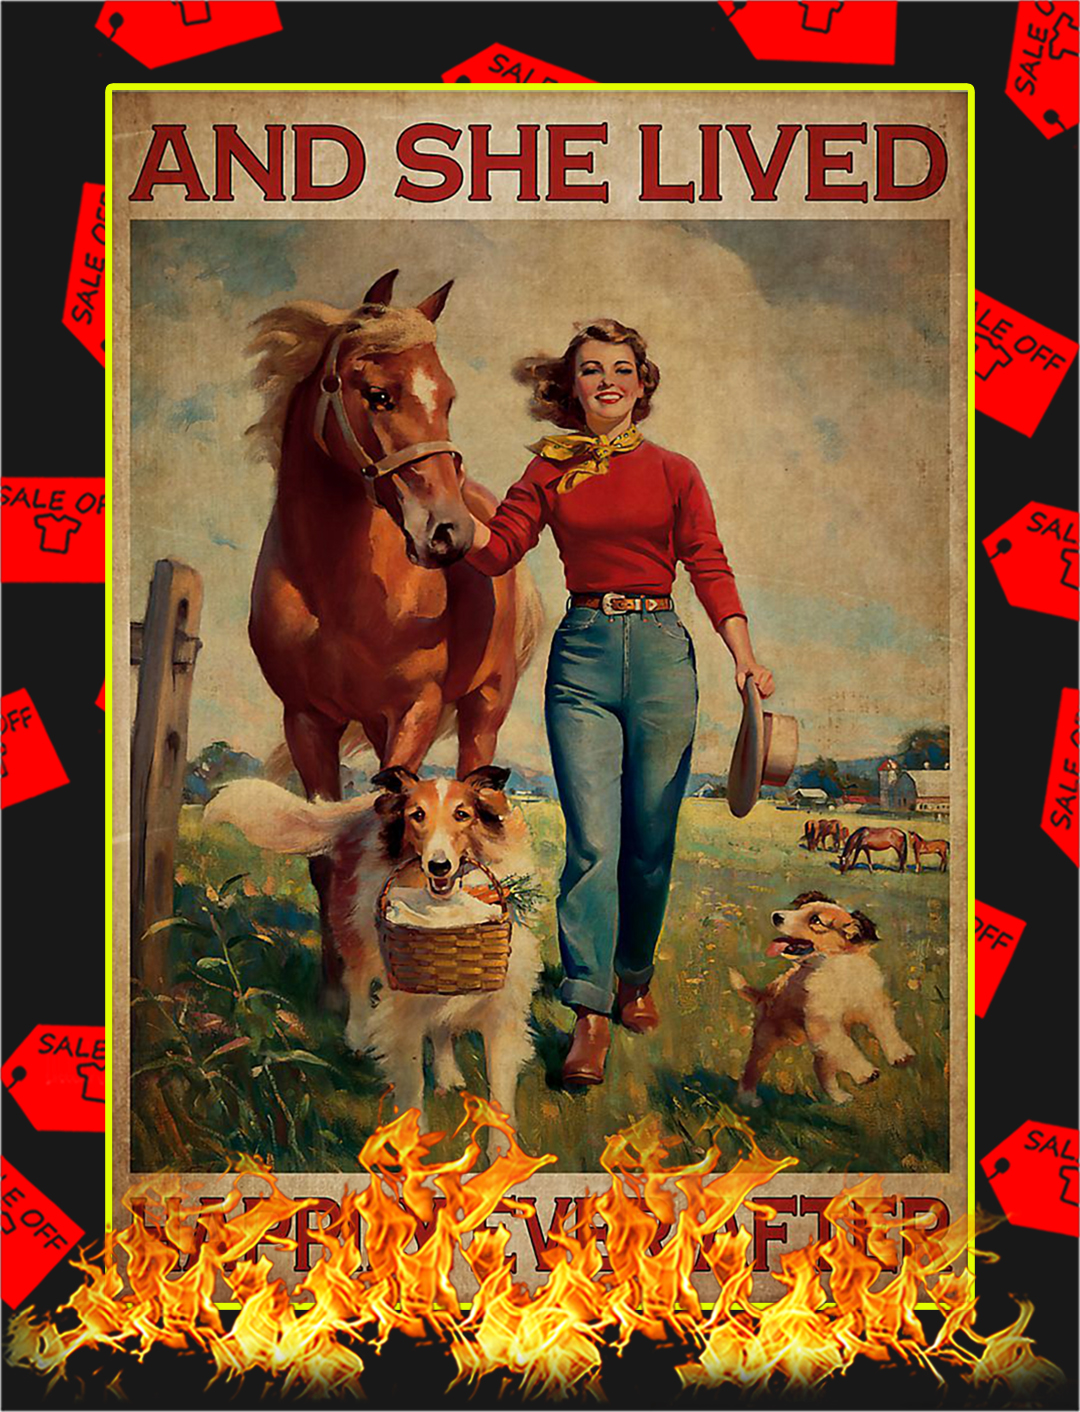 Girl with horse and dog lived happily ever after poster - A2